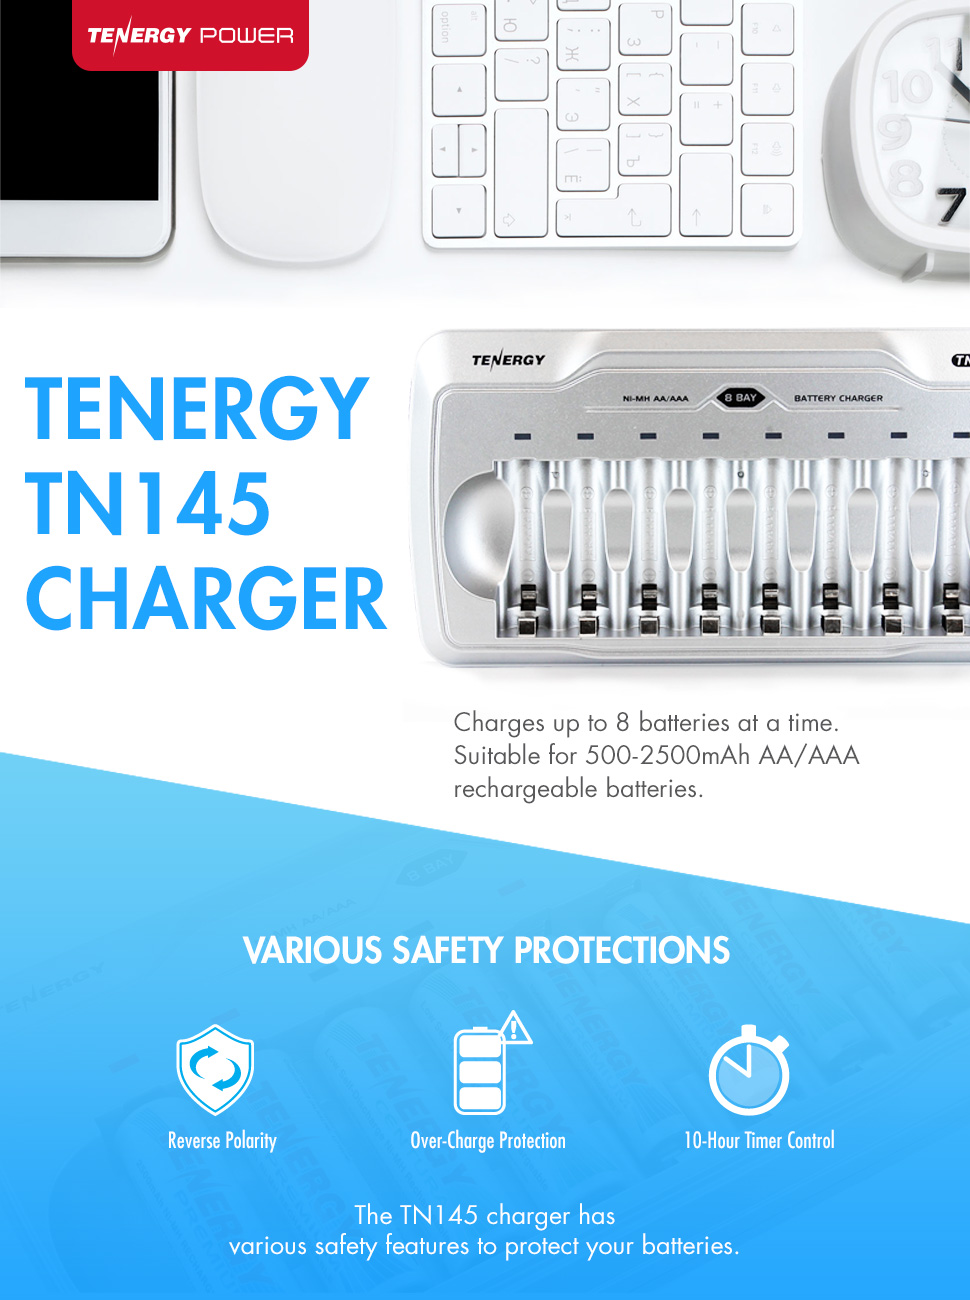 Tenergy Tn145 Aa Aaa Battery Charger 8 Slot Household Simplechargercircuitchargesupto12nicdcellsjpg Product Description